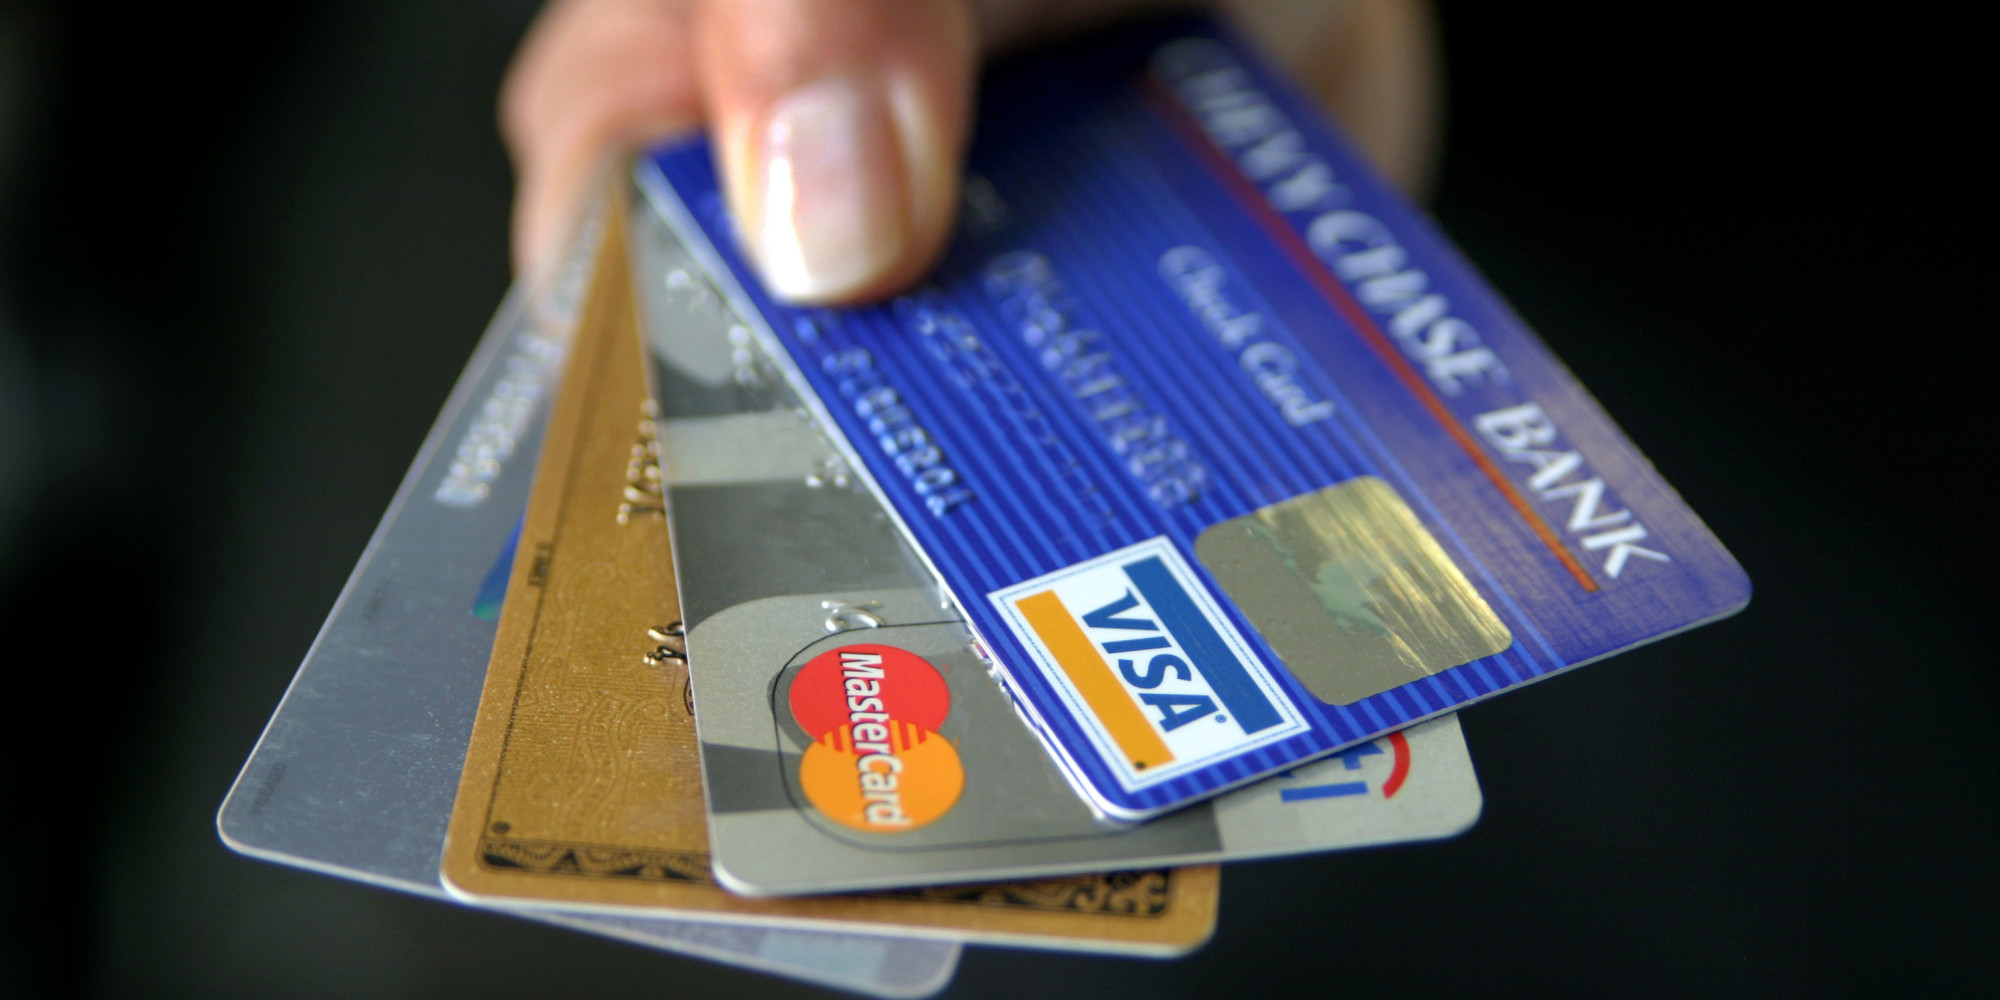 Manage Debt With Credit Card to Debit Card Transfer